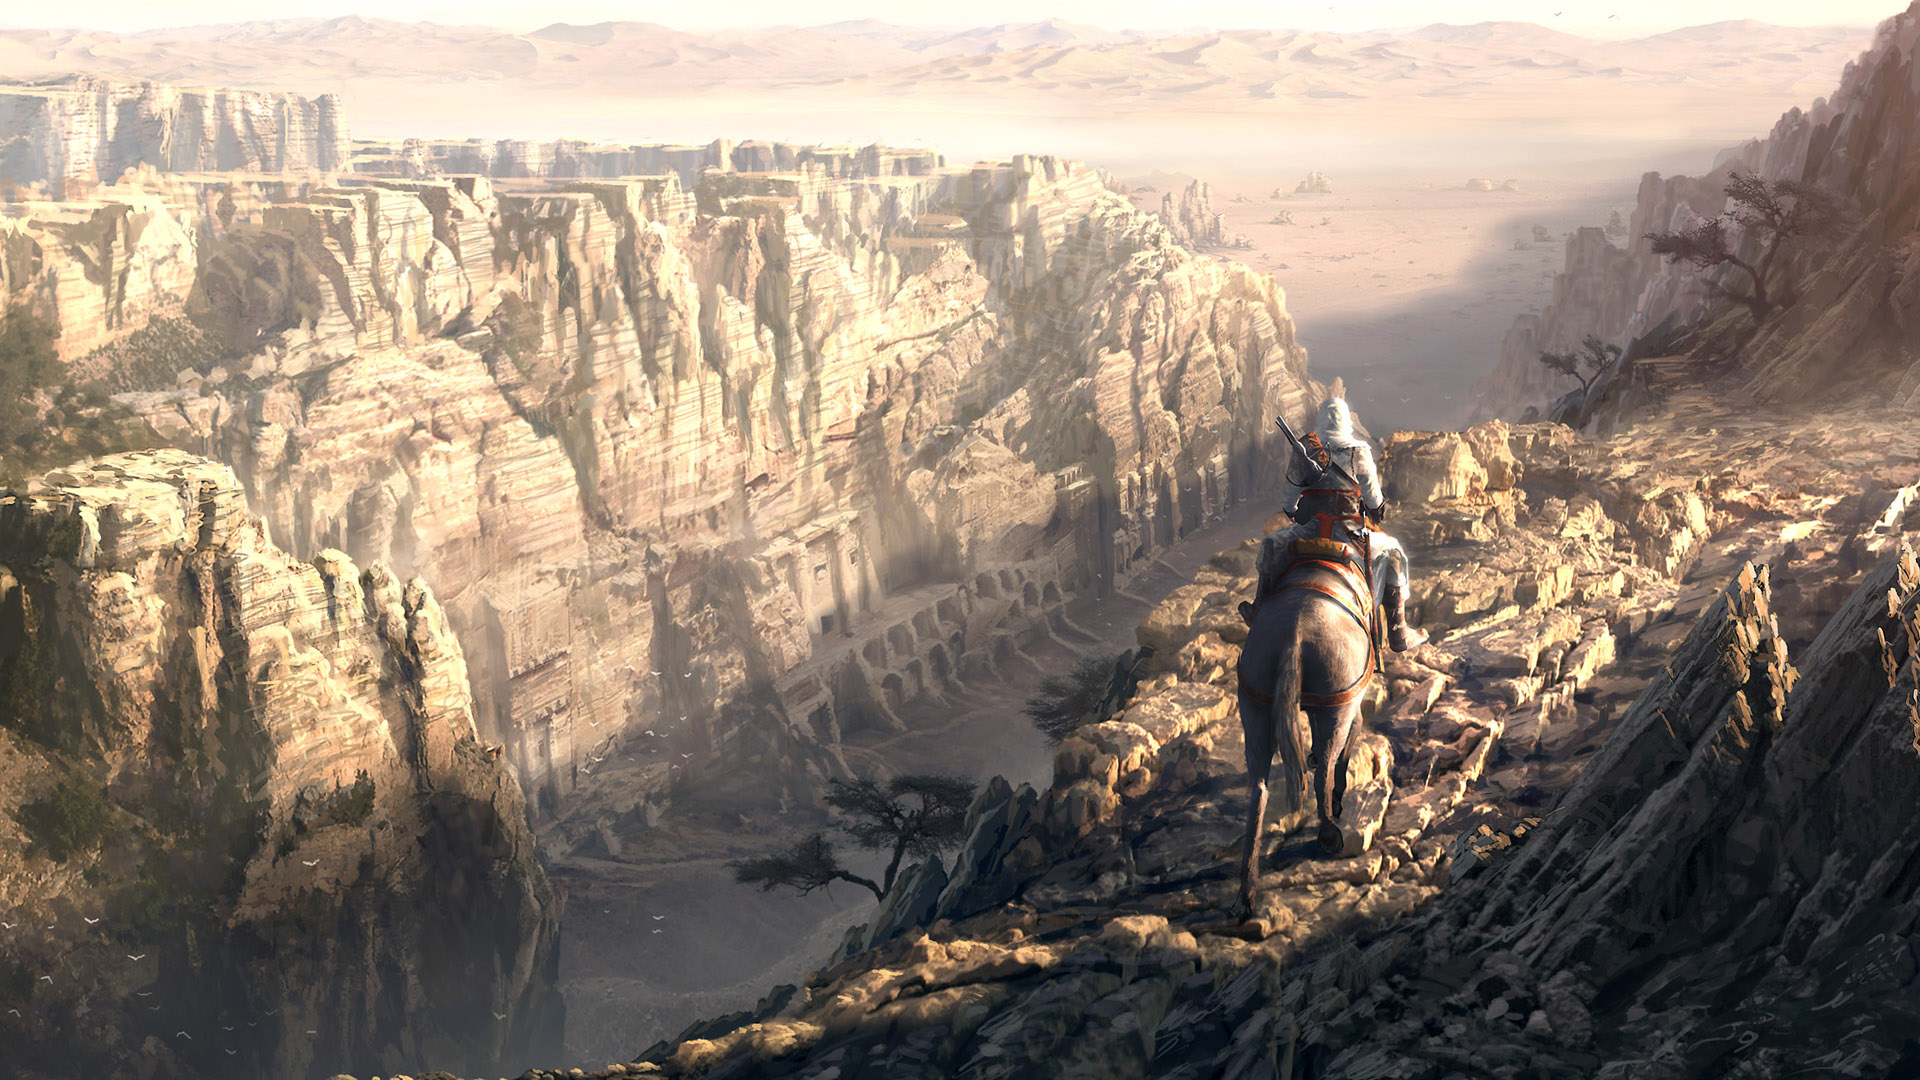 Amazing   Wallpaper Horse Assassin'S Creed - 81648  Best Photo Reference_74957.jpg